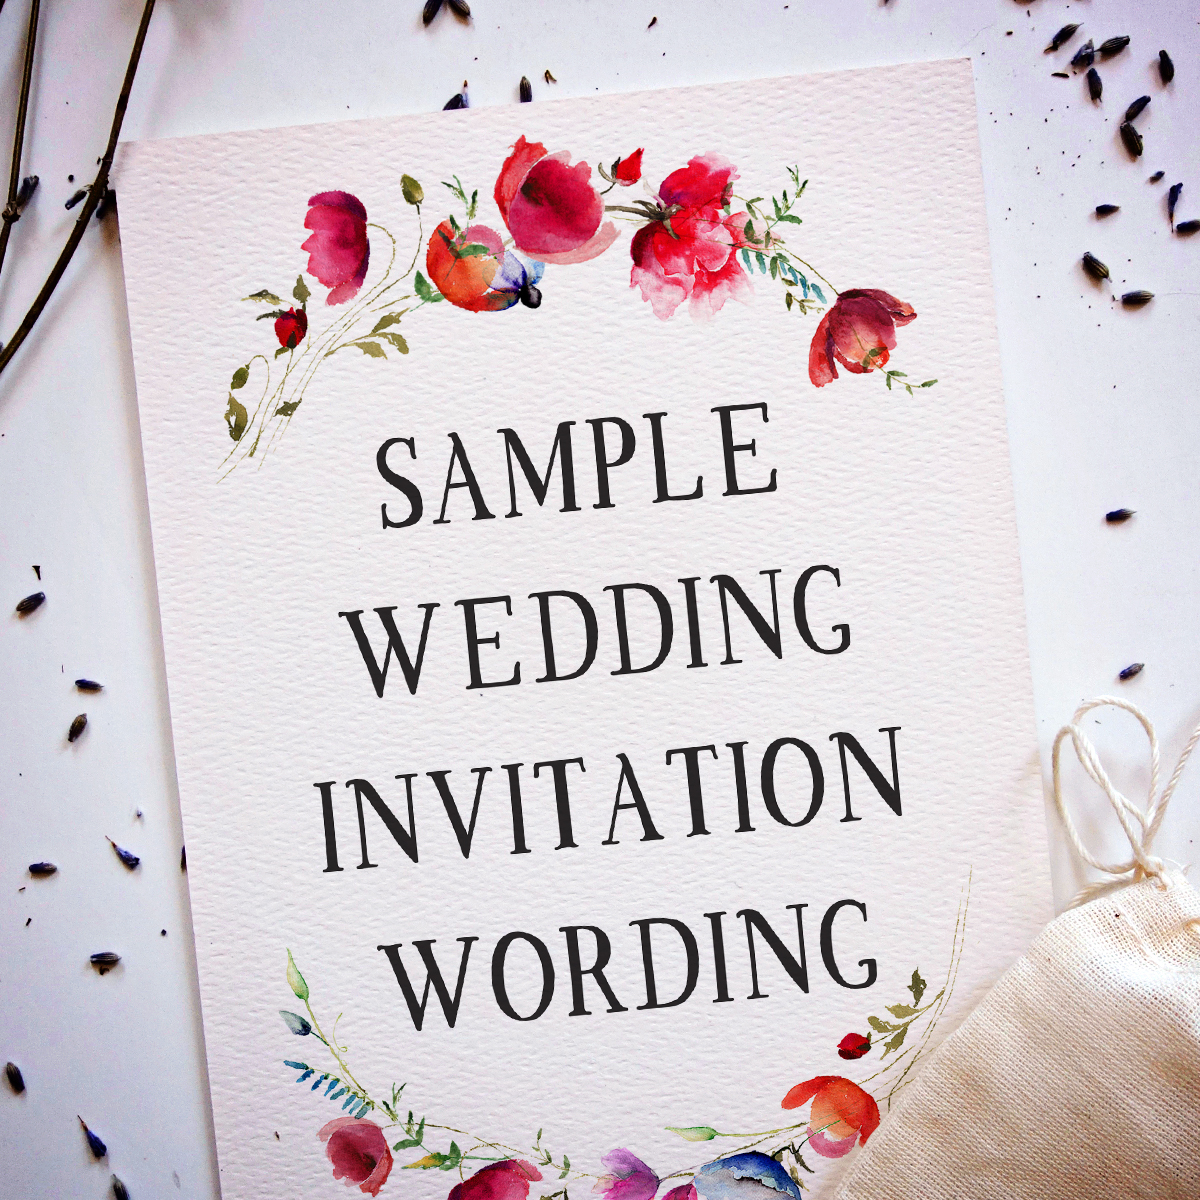 wedding invitation wording samples sample wedding invitations 15 Examples of Wedding Invitation Wording You Can Steal A Practical Wedding We re Your Wedding Planner Wedding Ideas for Brides Bridesmaids Grooms